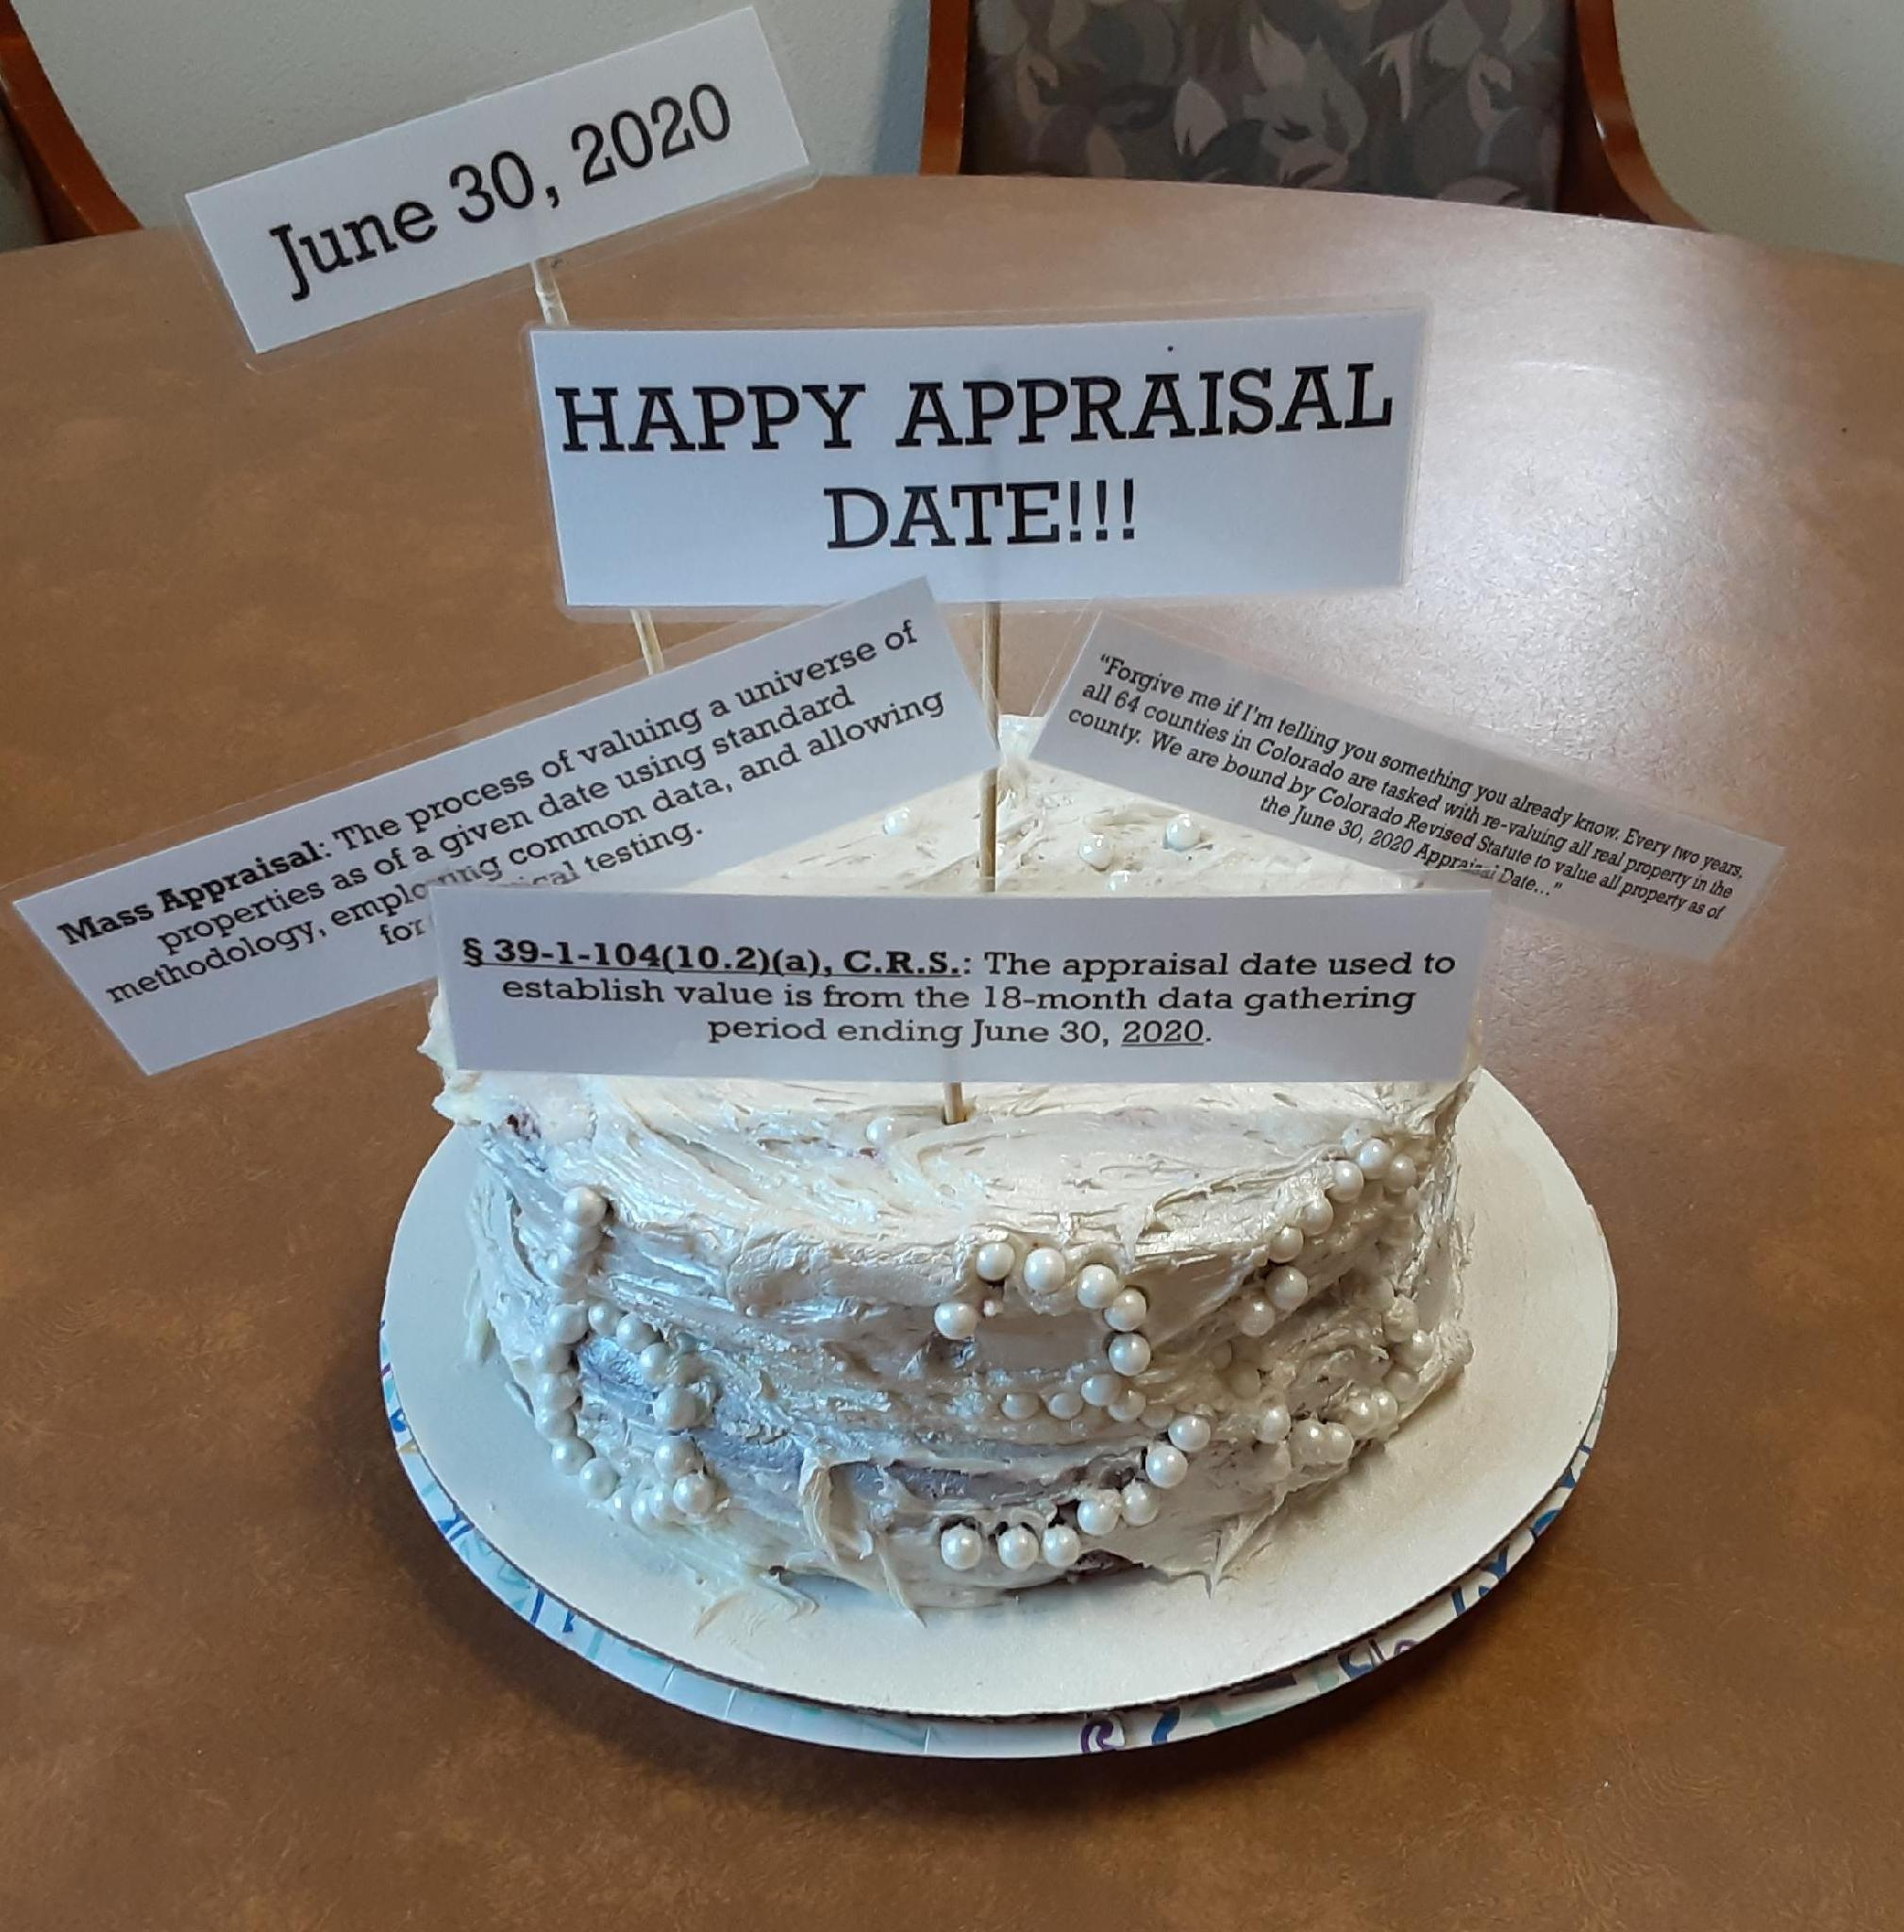 A cake with white frosting and small signs related to June 30, 2020, the County Appraisal Date